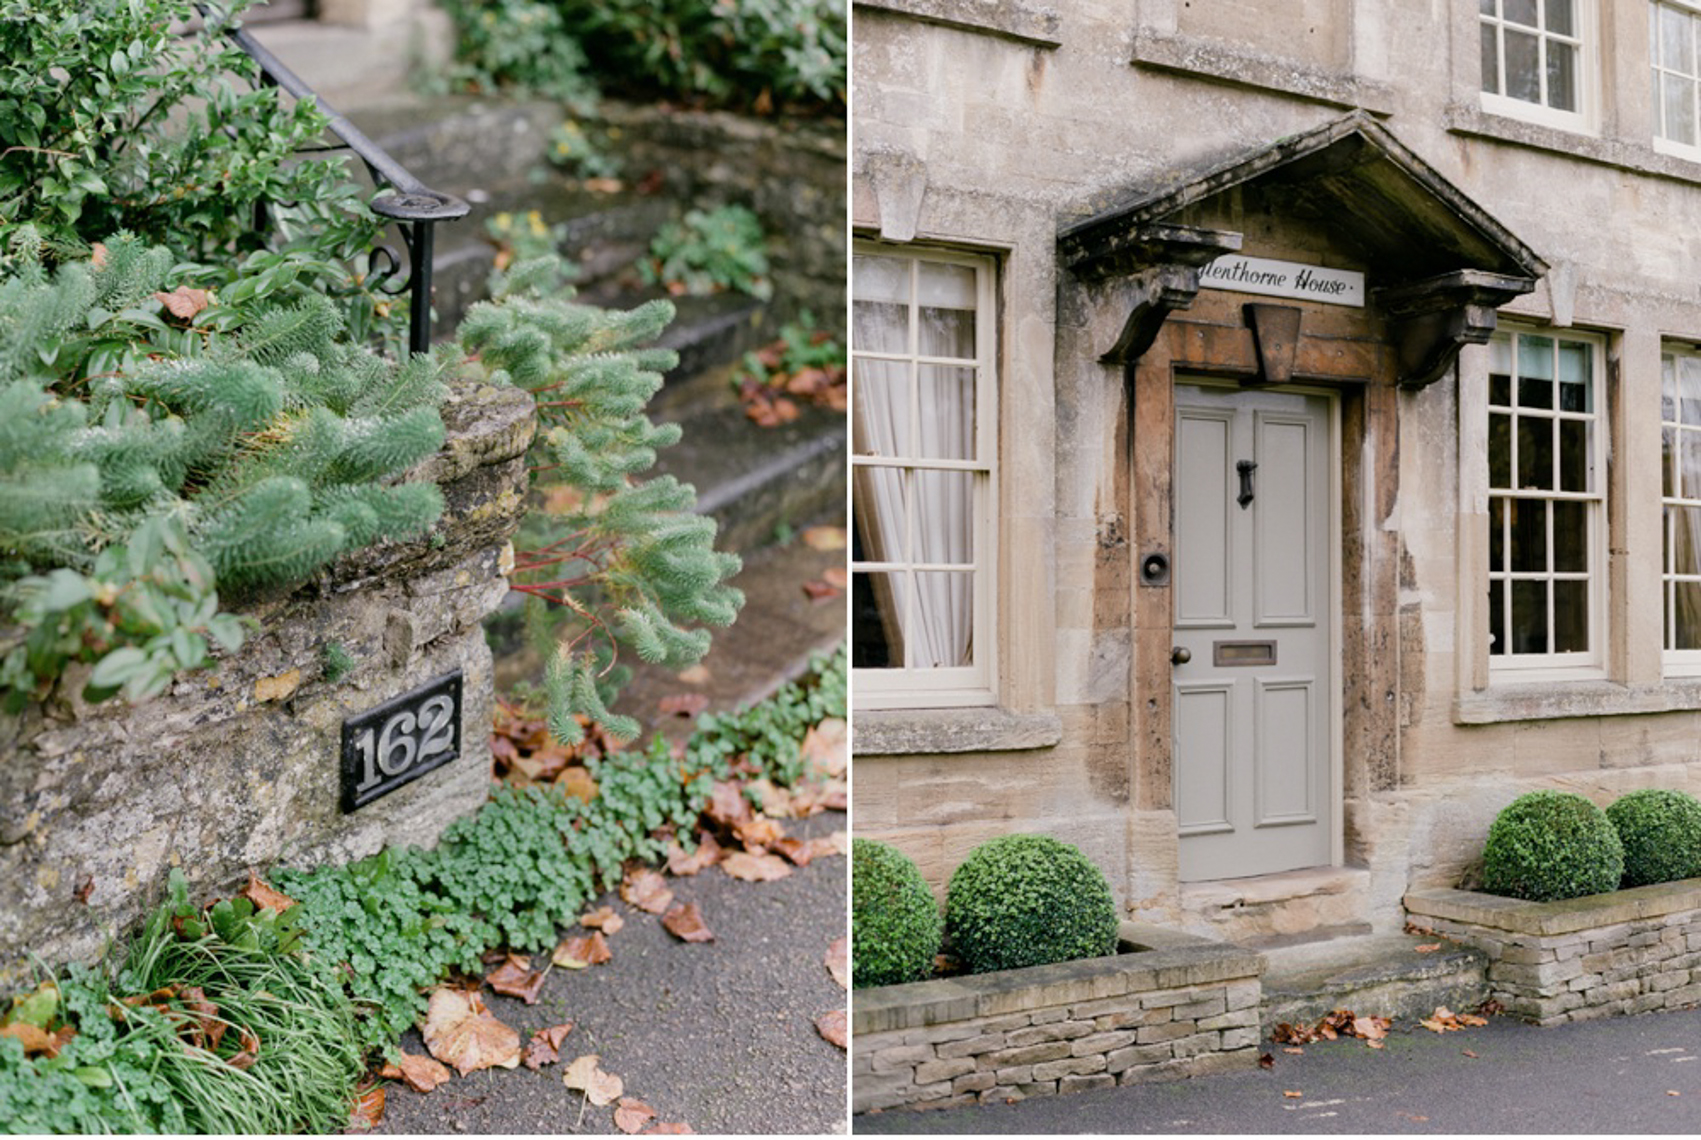 Cotswolds_WeddingPhotographer_UK©MadalinaSheldon_33.jpg